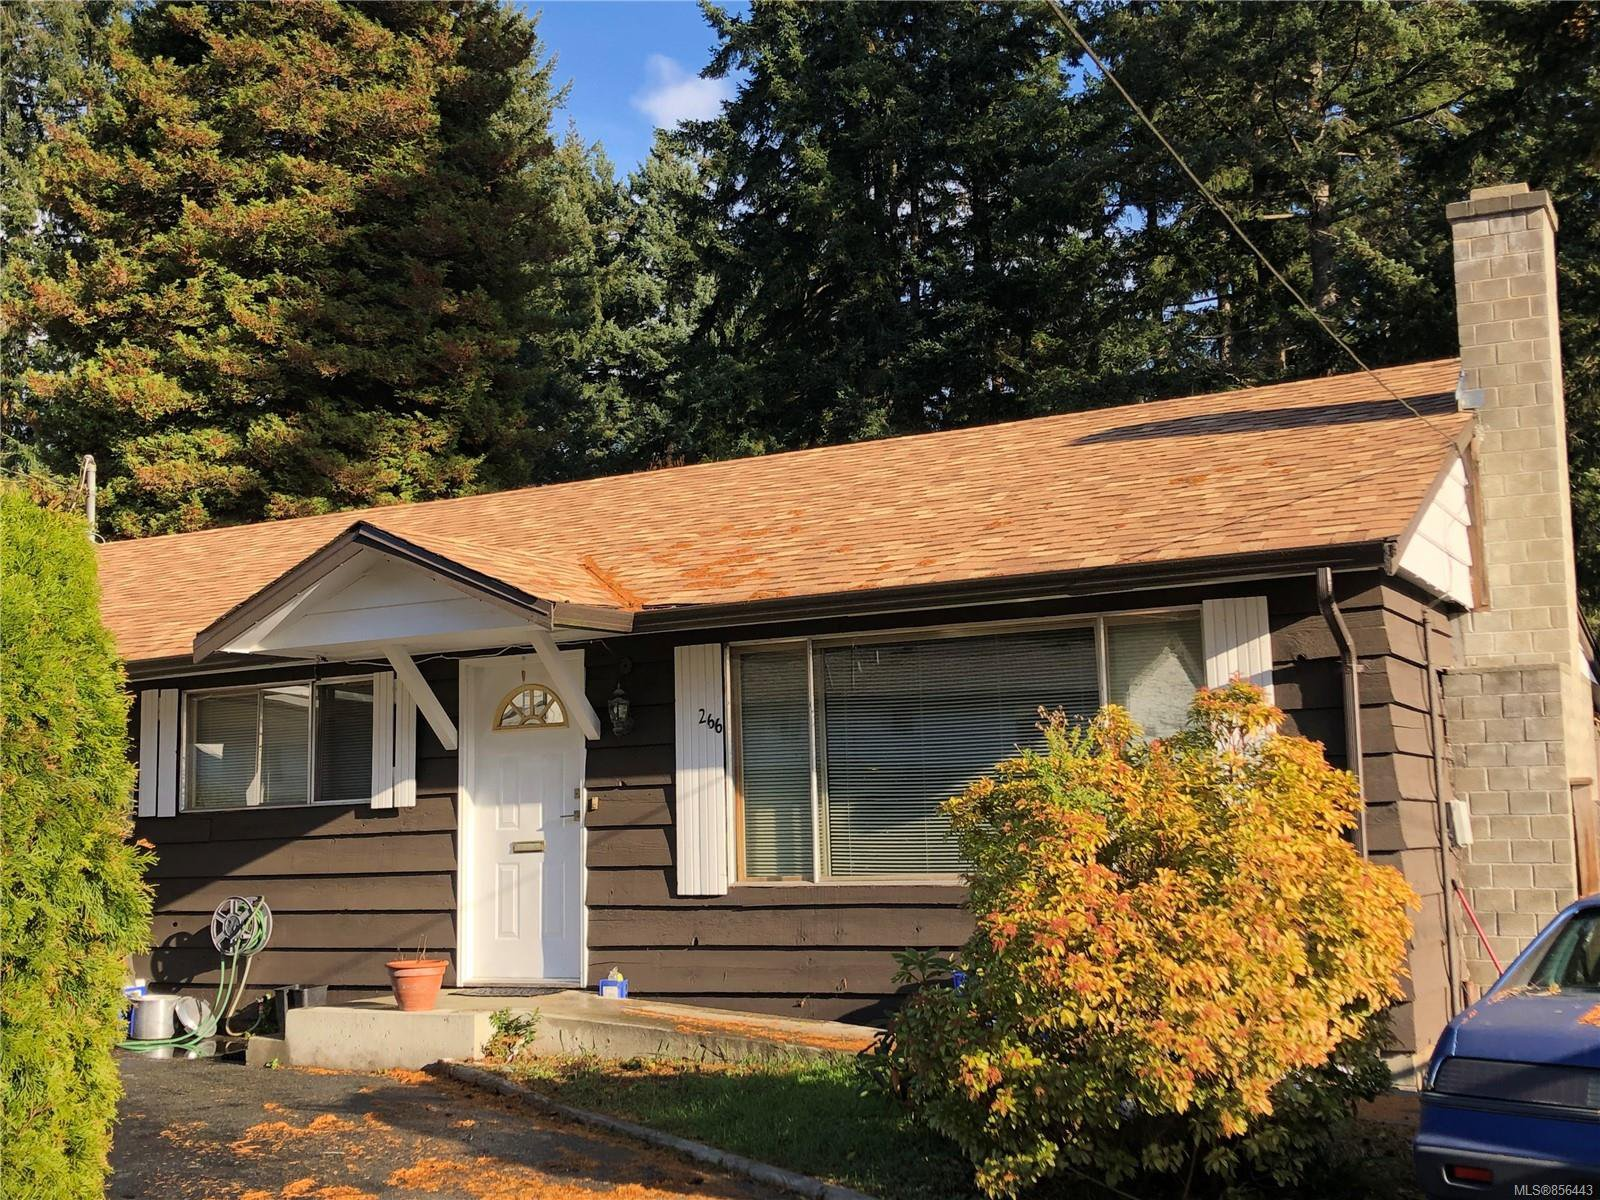 Main Photo: 266 Ivy Pl in : CV Comox (Town of) House for sale (Comox Valley)  : MLS®# 856443